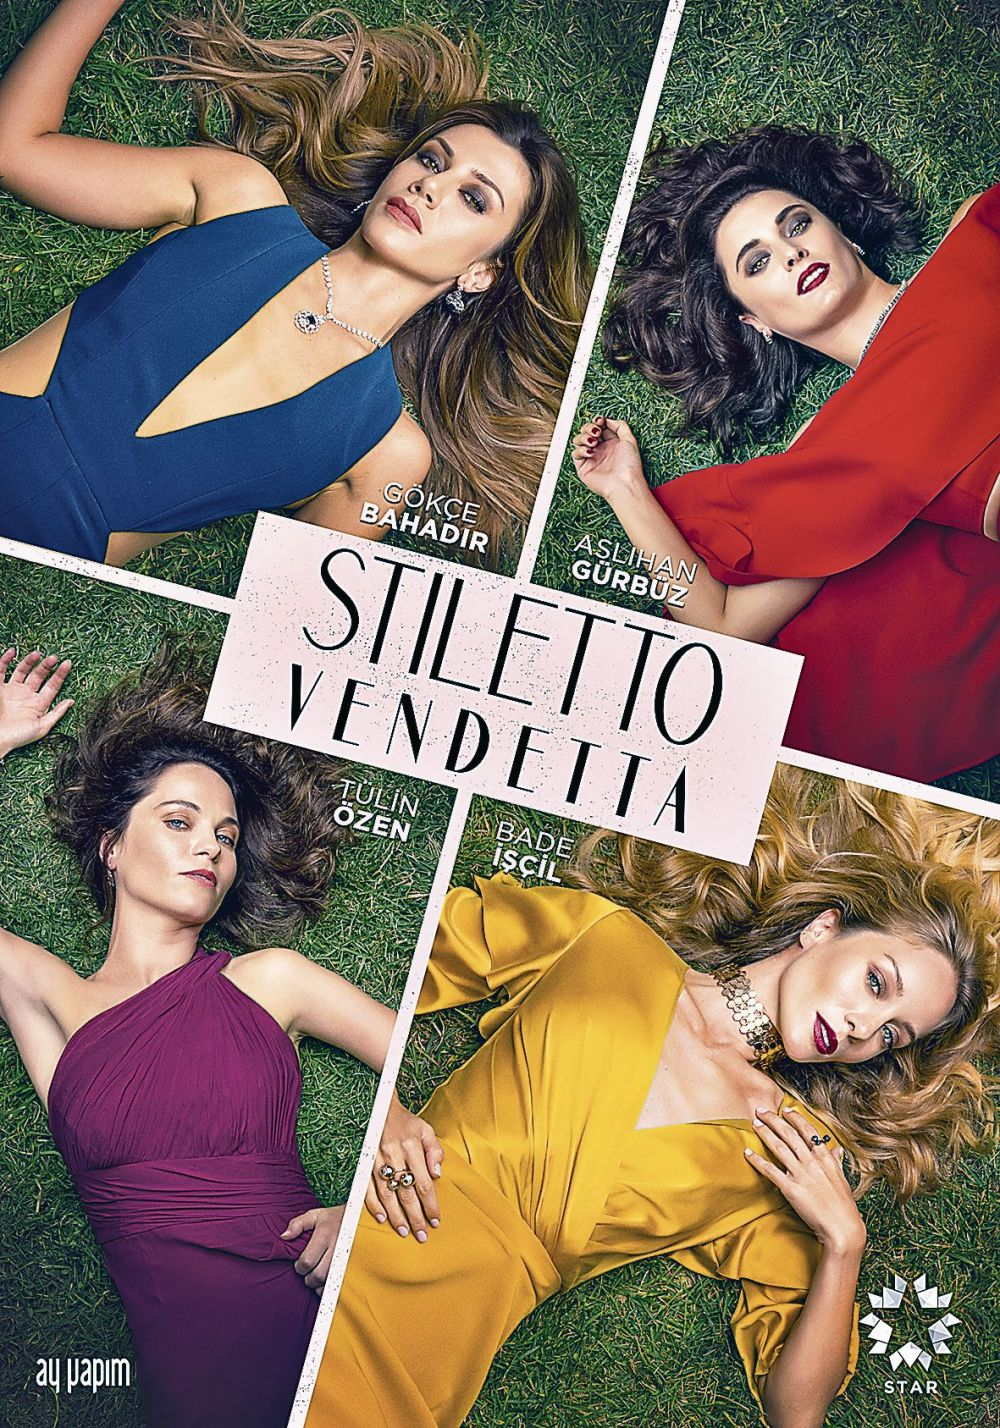 Novela turca: Stiletto vendetta